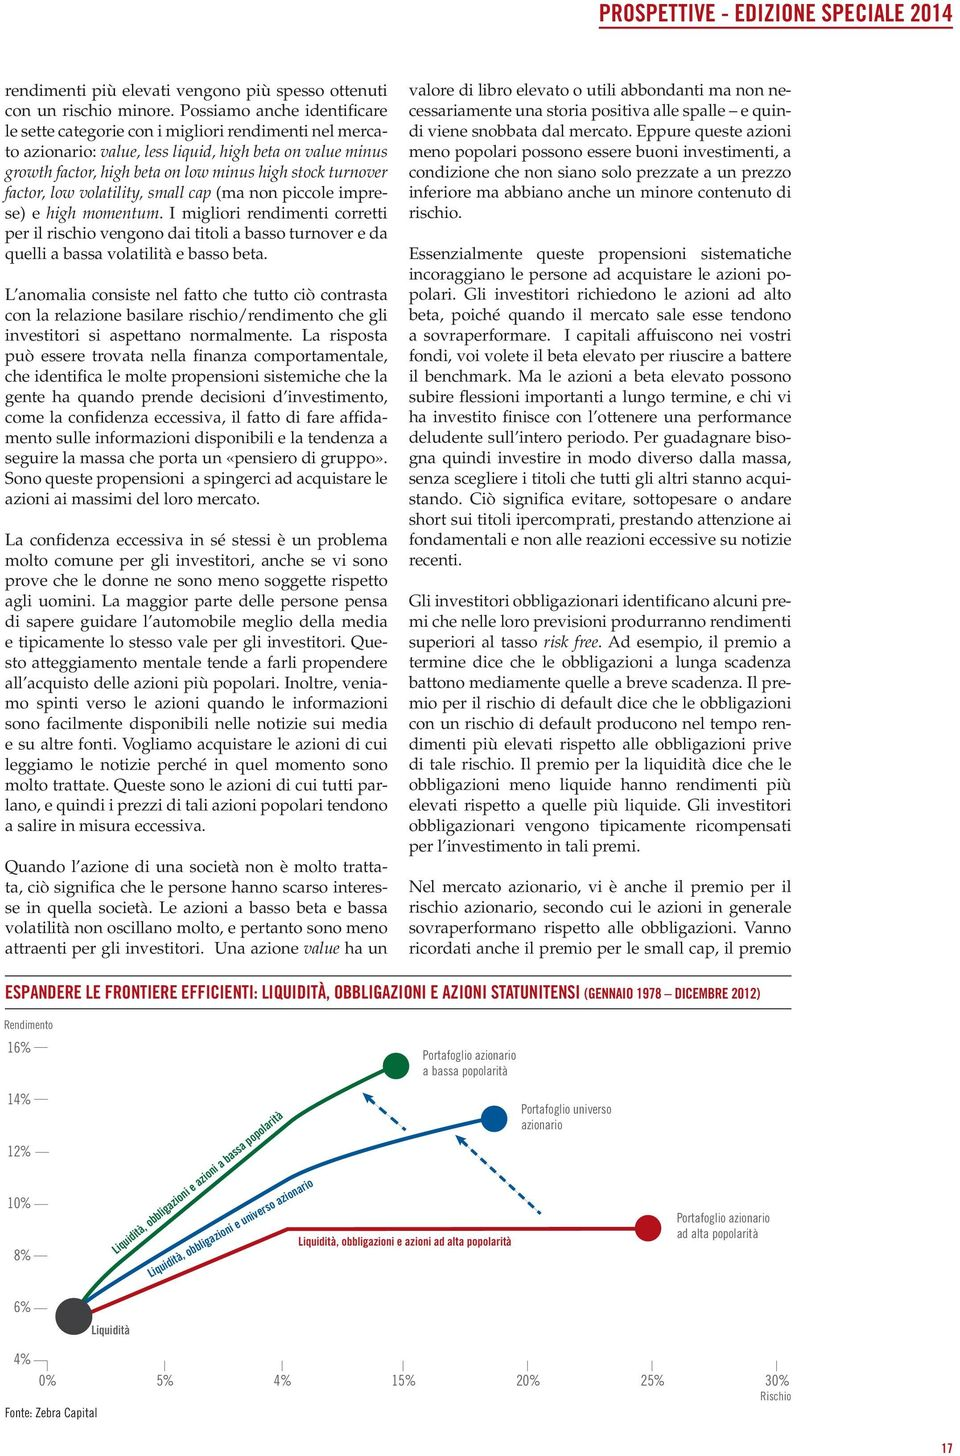 factor, low volatility, small cap (ma non piccole imprese) e high momentum.